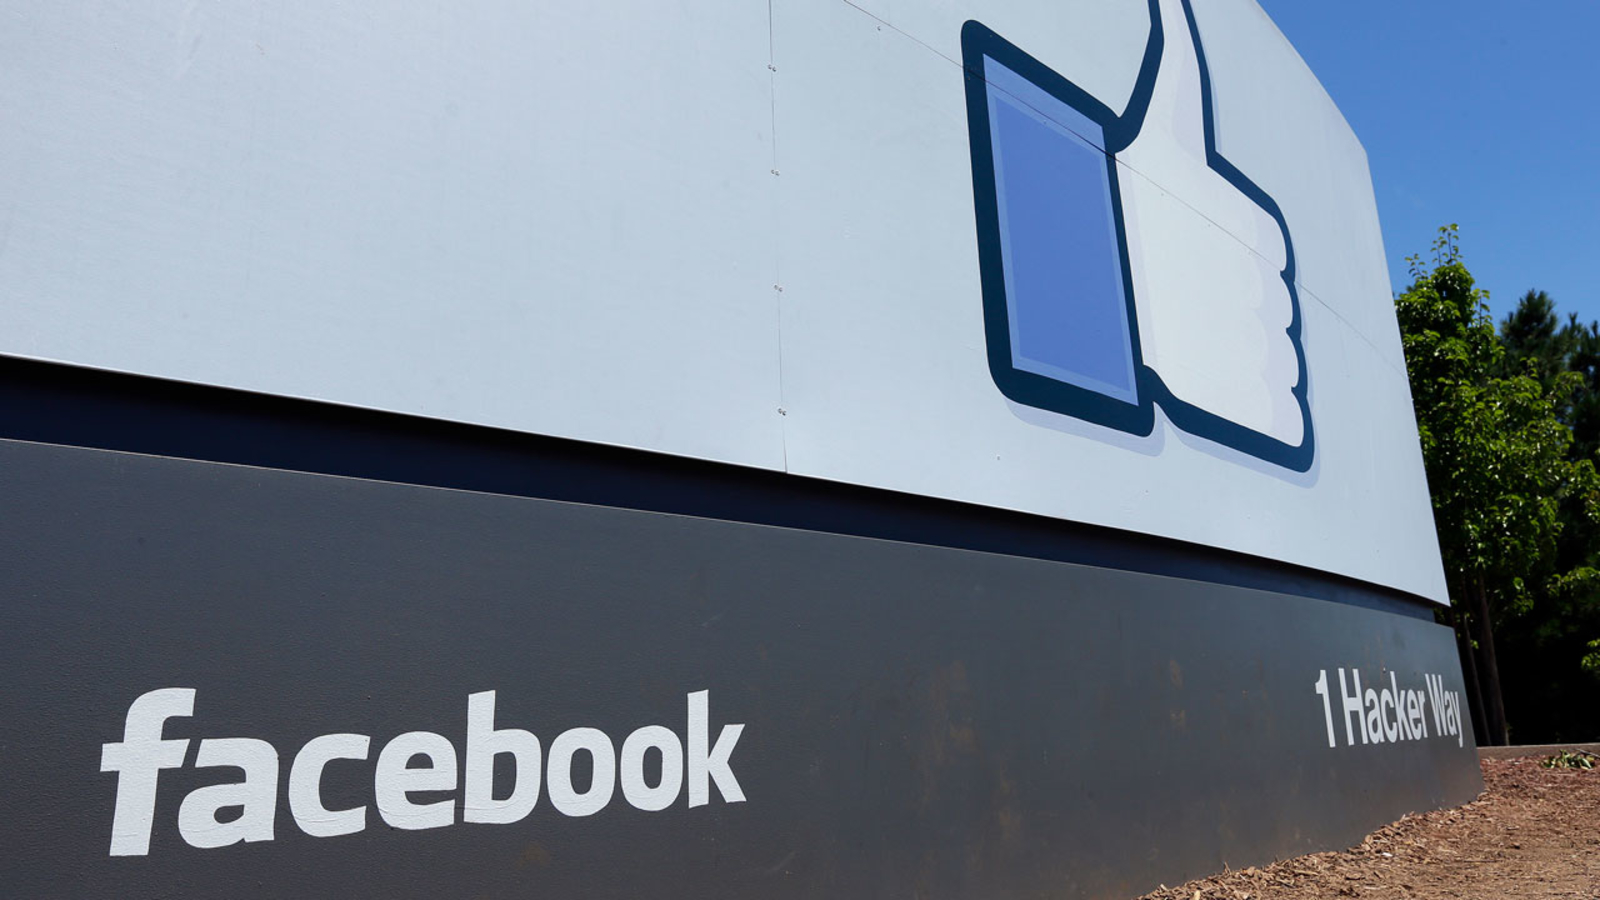 Facebook data breach 2021 check: How to tell if your account was one of the half billion that were breached